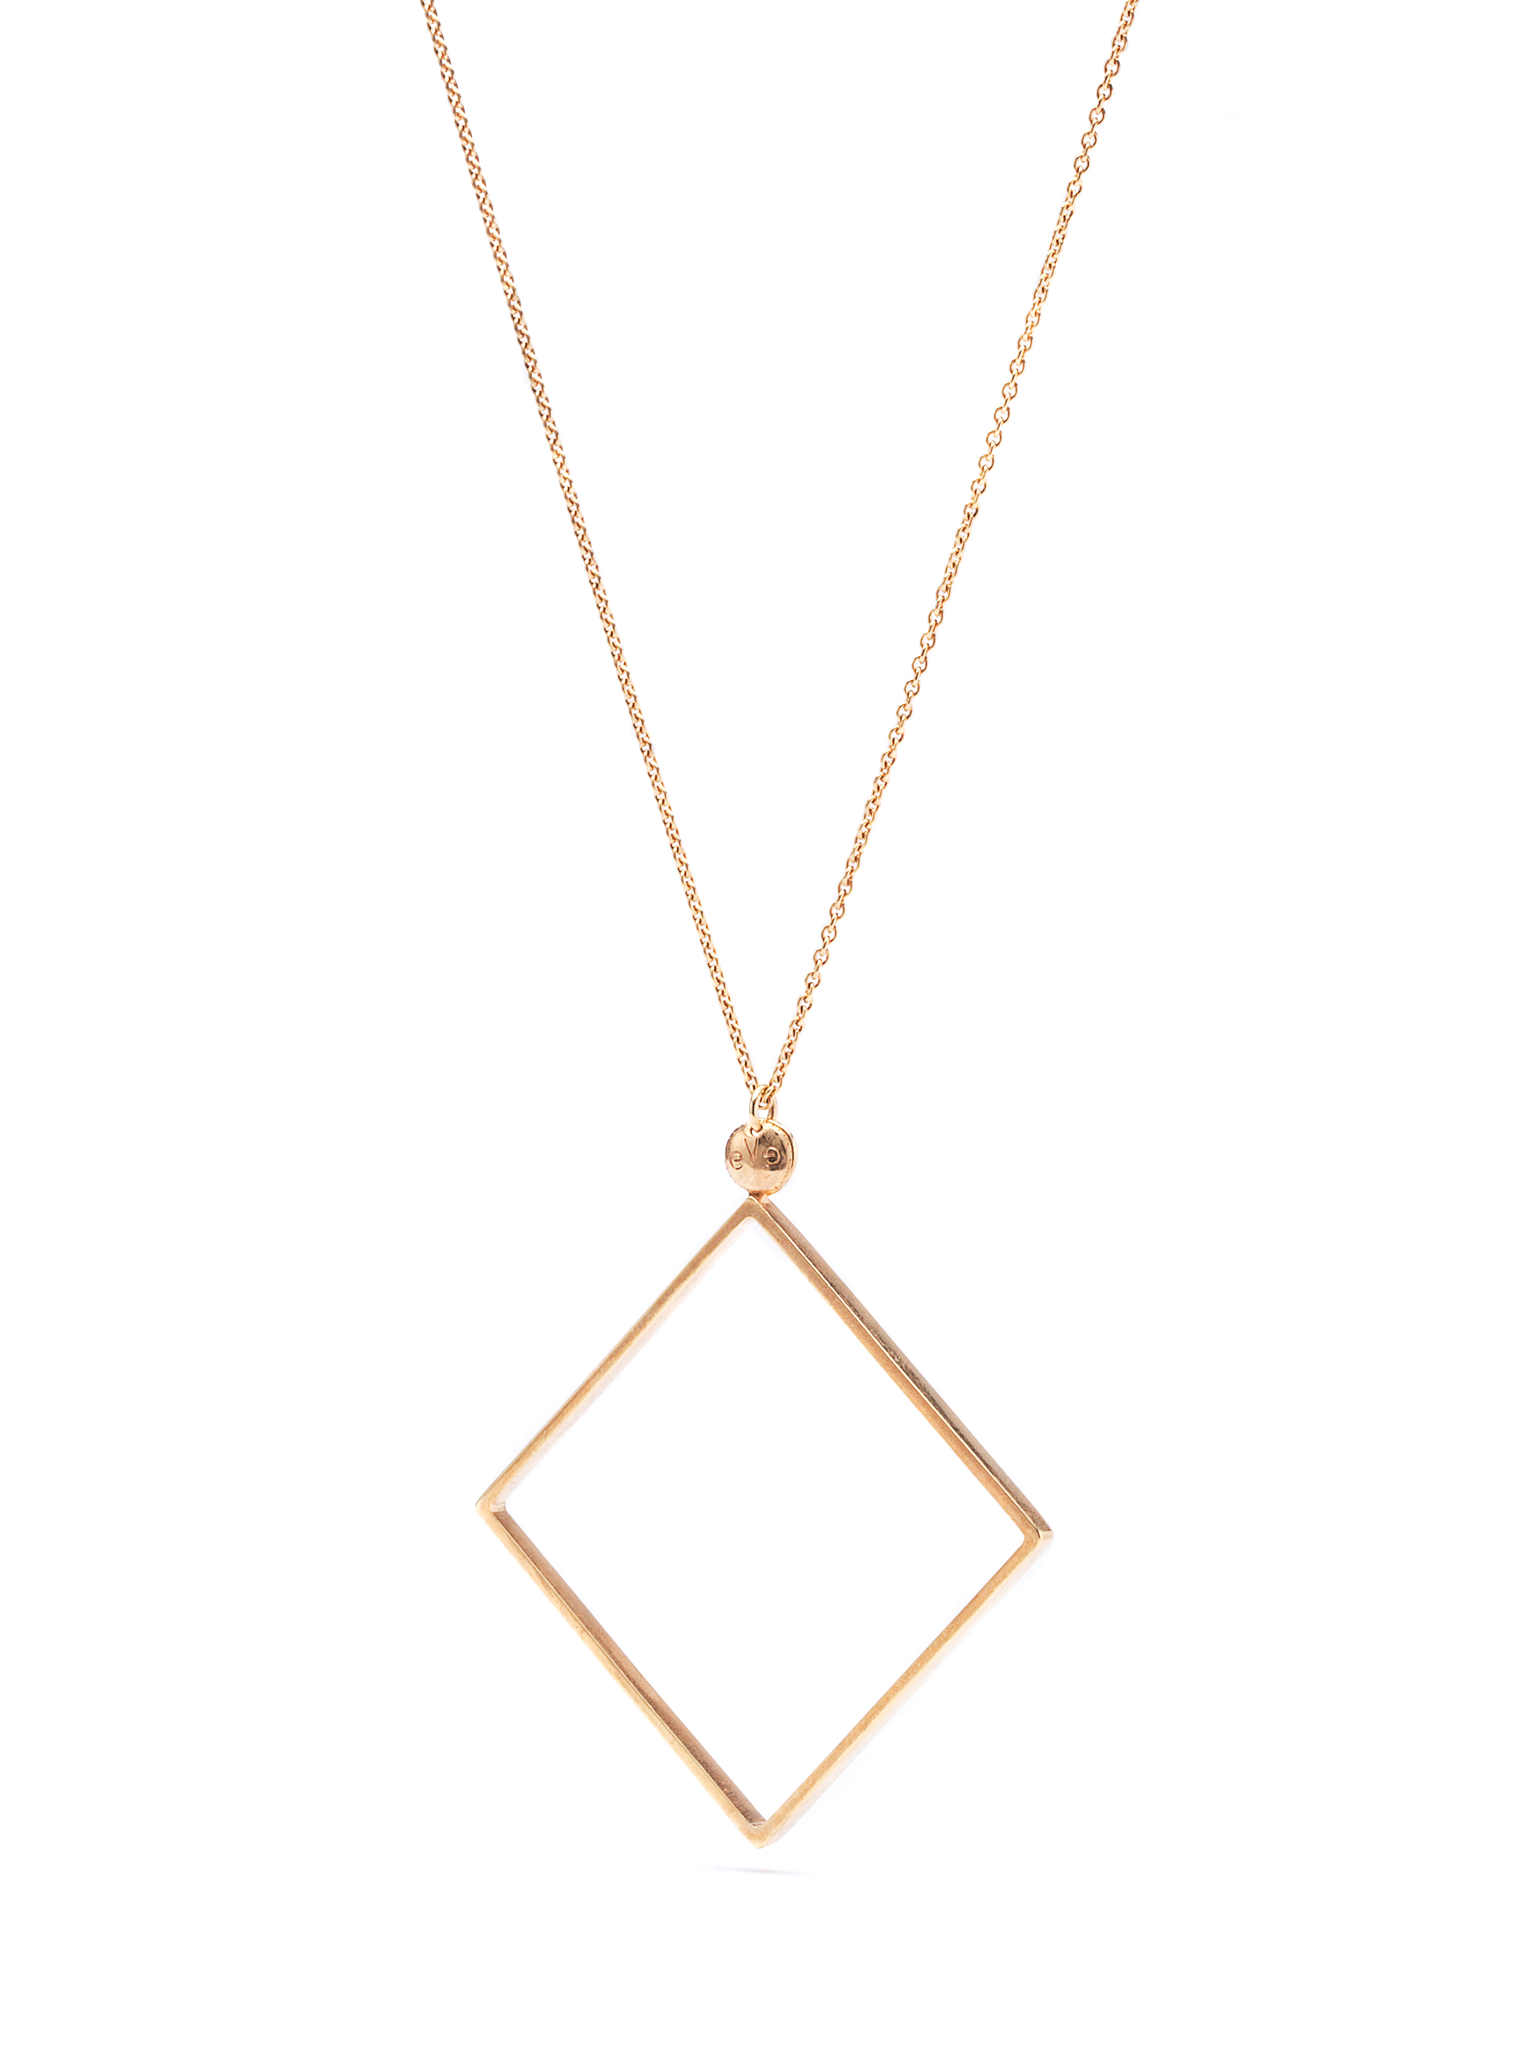 square product necklace mini allerasales with image gold tennis chain products